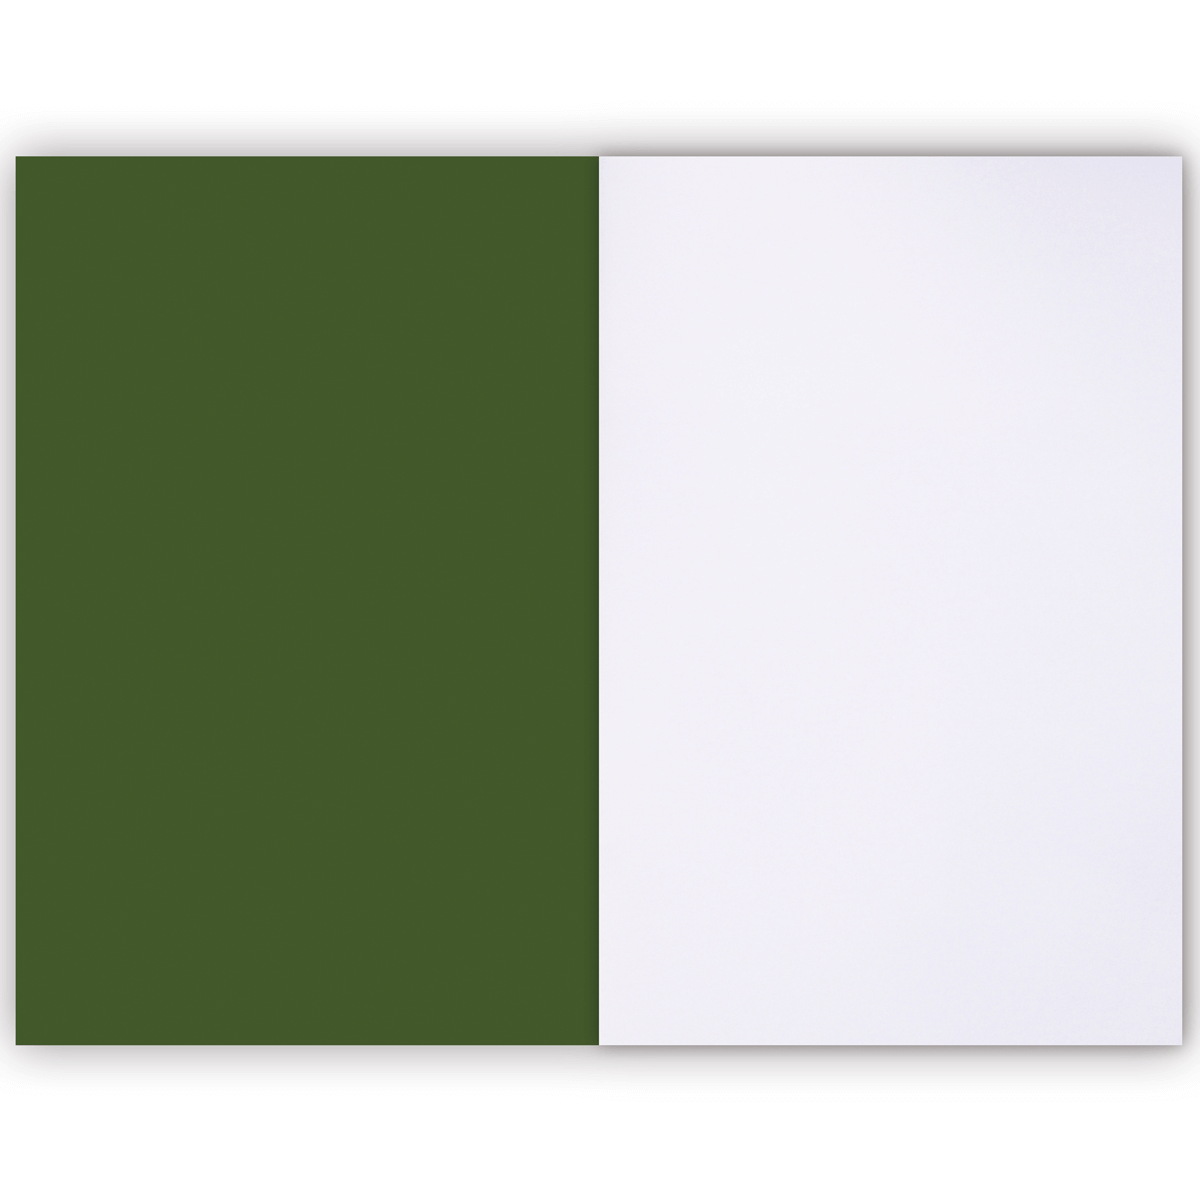 Cassis royal carnet note book Camouflage - cassisroyal.com